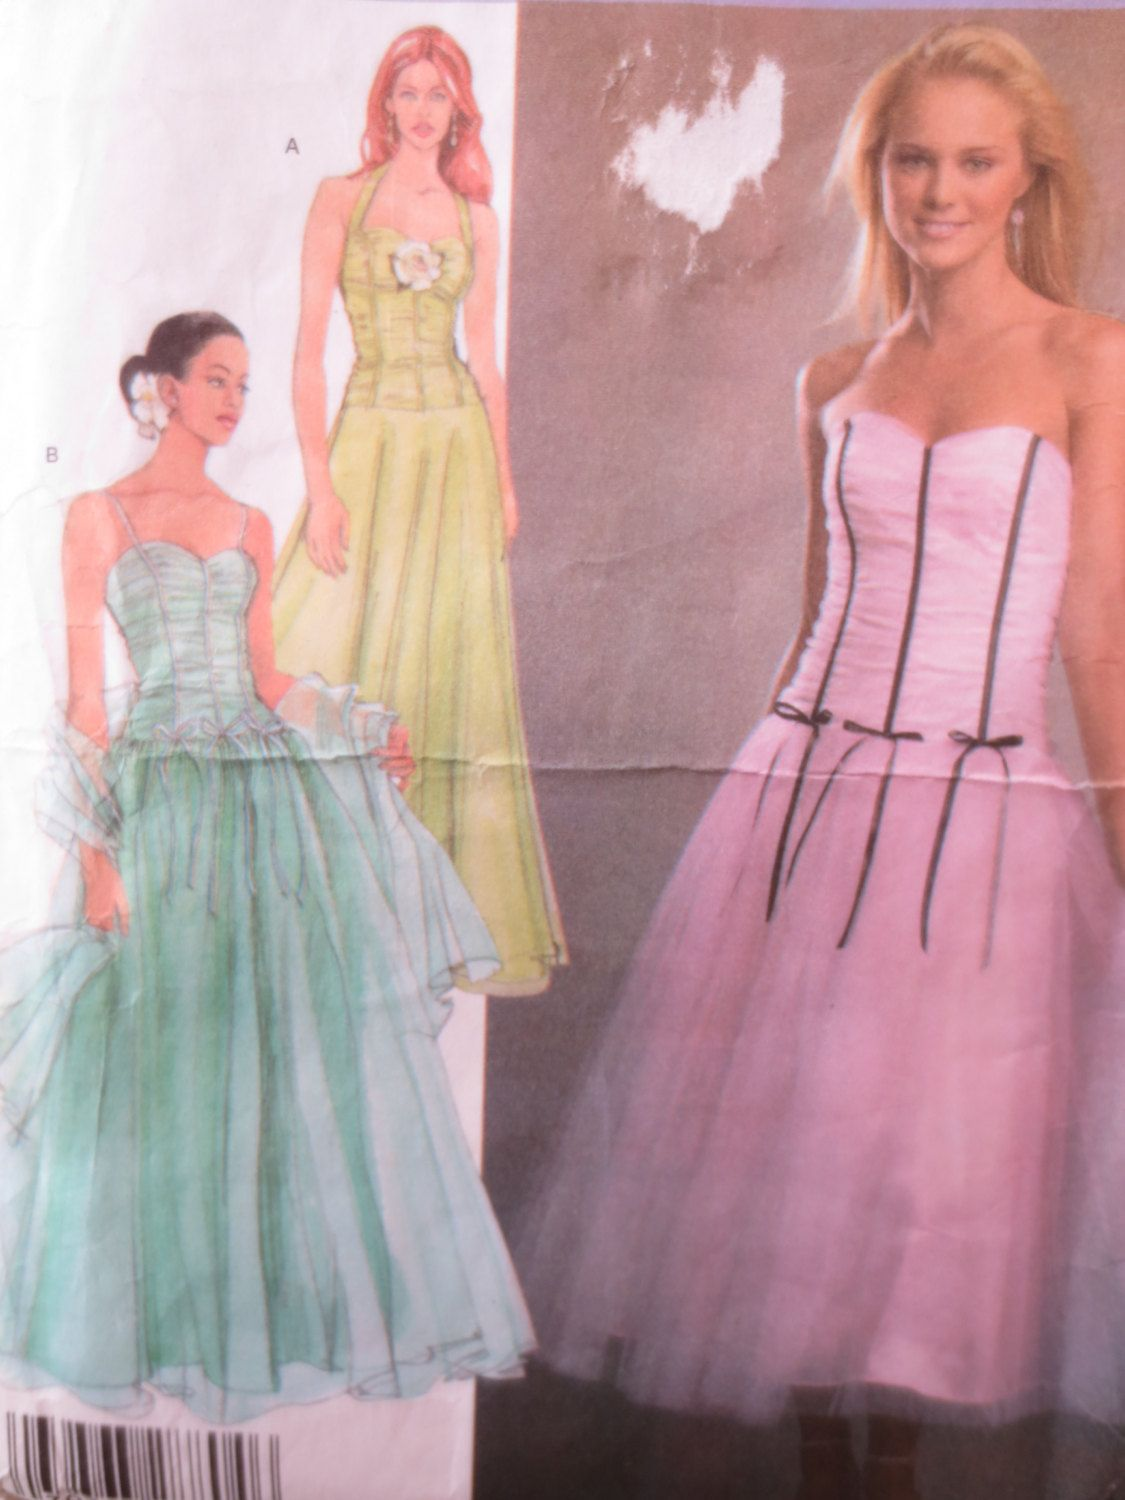 Simplicity 4686 sewing pattern jessica mcclintock dress 2004 simplicity 4686 sewing pattern jessica mcclintock dress 2004 prom dress pattern formal dress ombrellifo Images